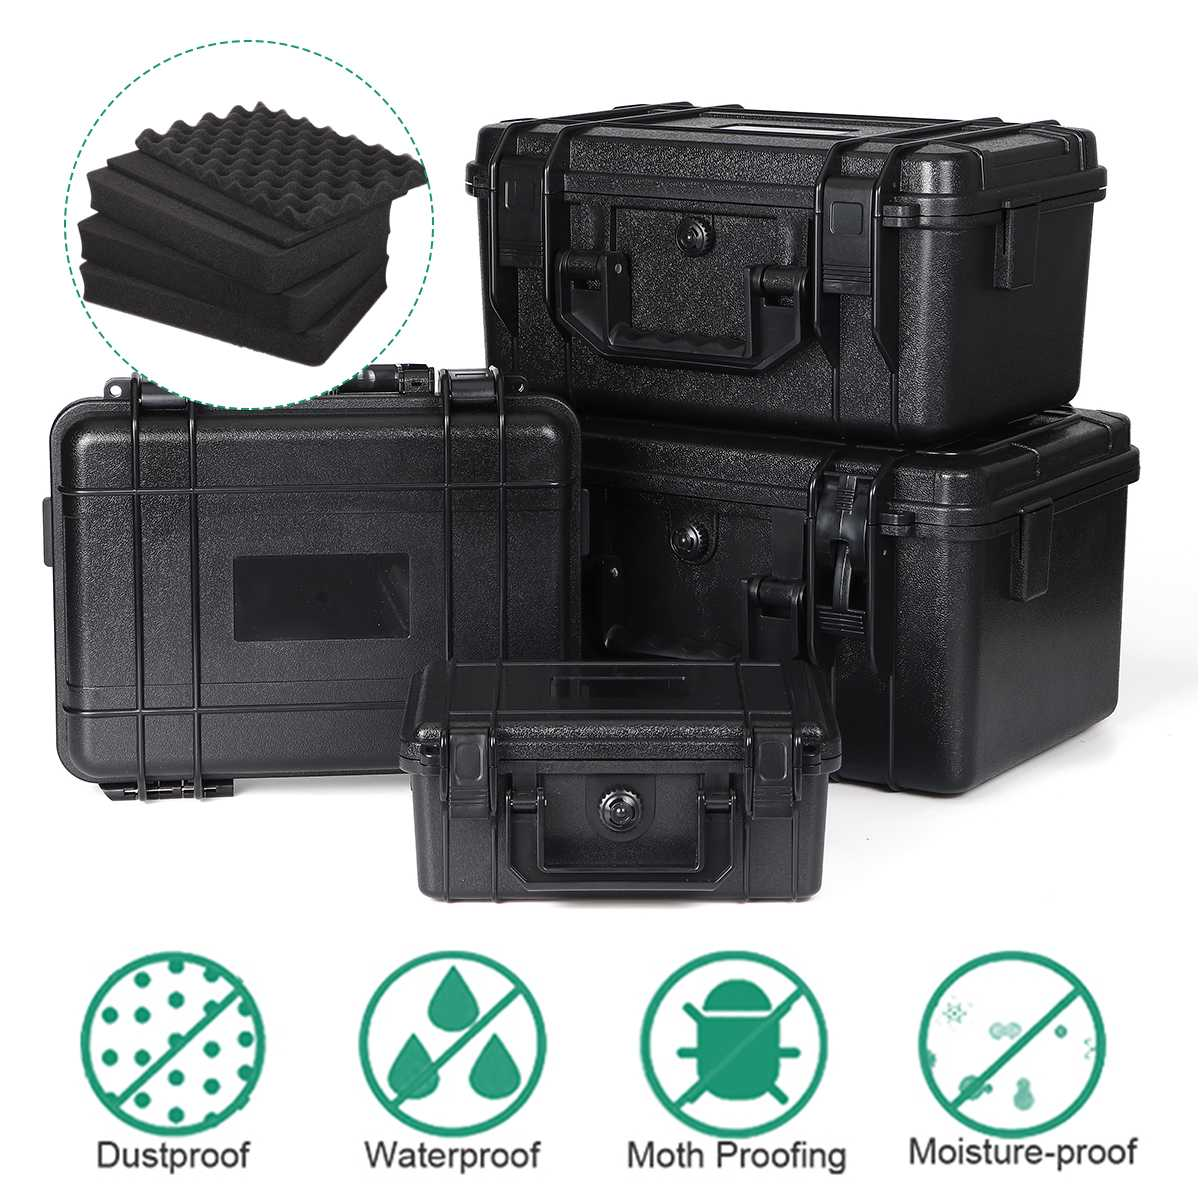 Waterproof Safety Case ABS Plastic Tool Box Outdoor Tactical Dry Box Sealed Safety Equipment Storage Outdoor Tool Container